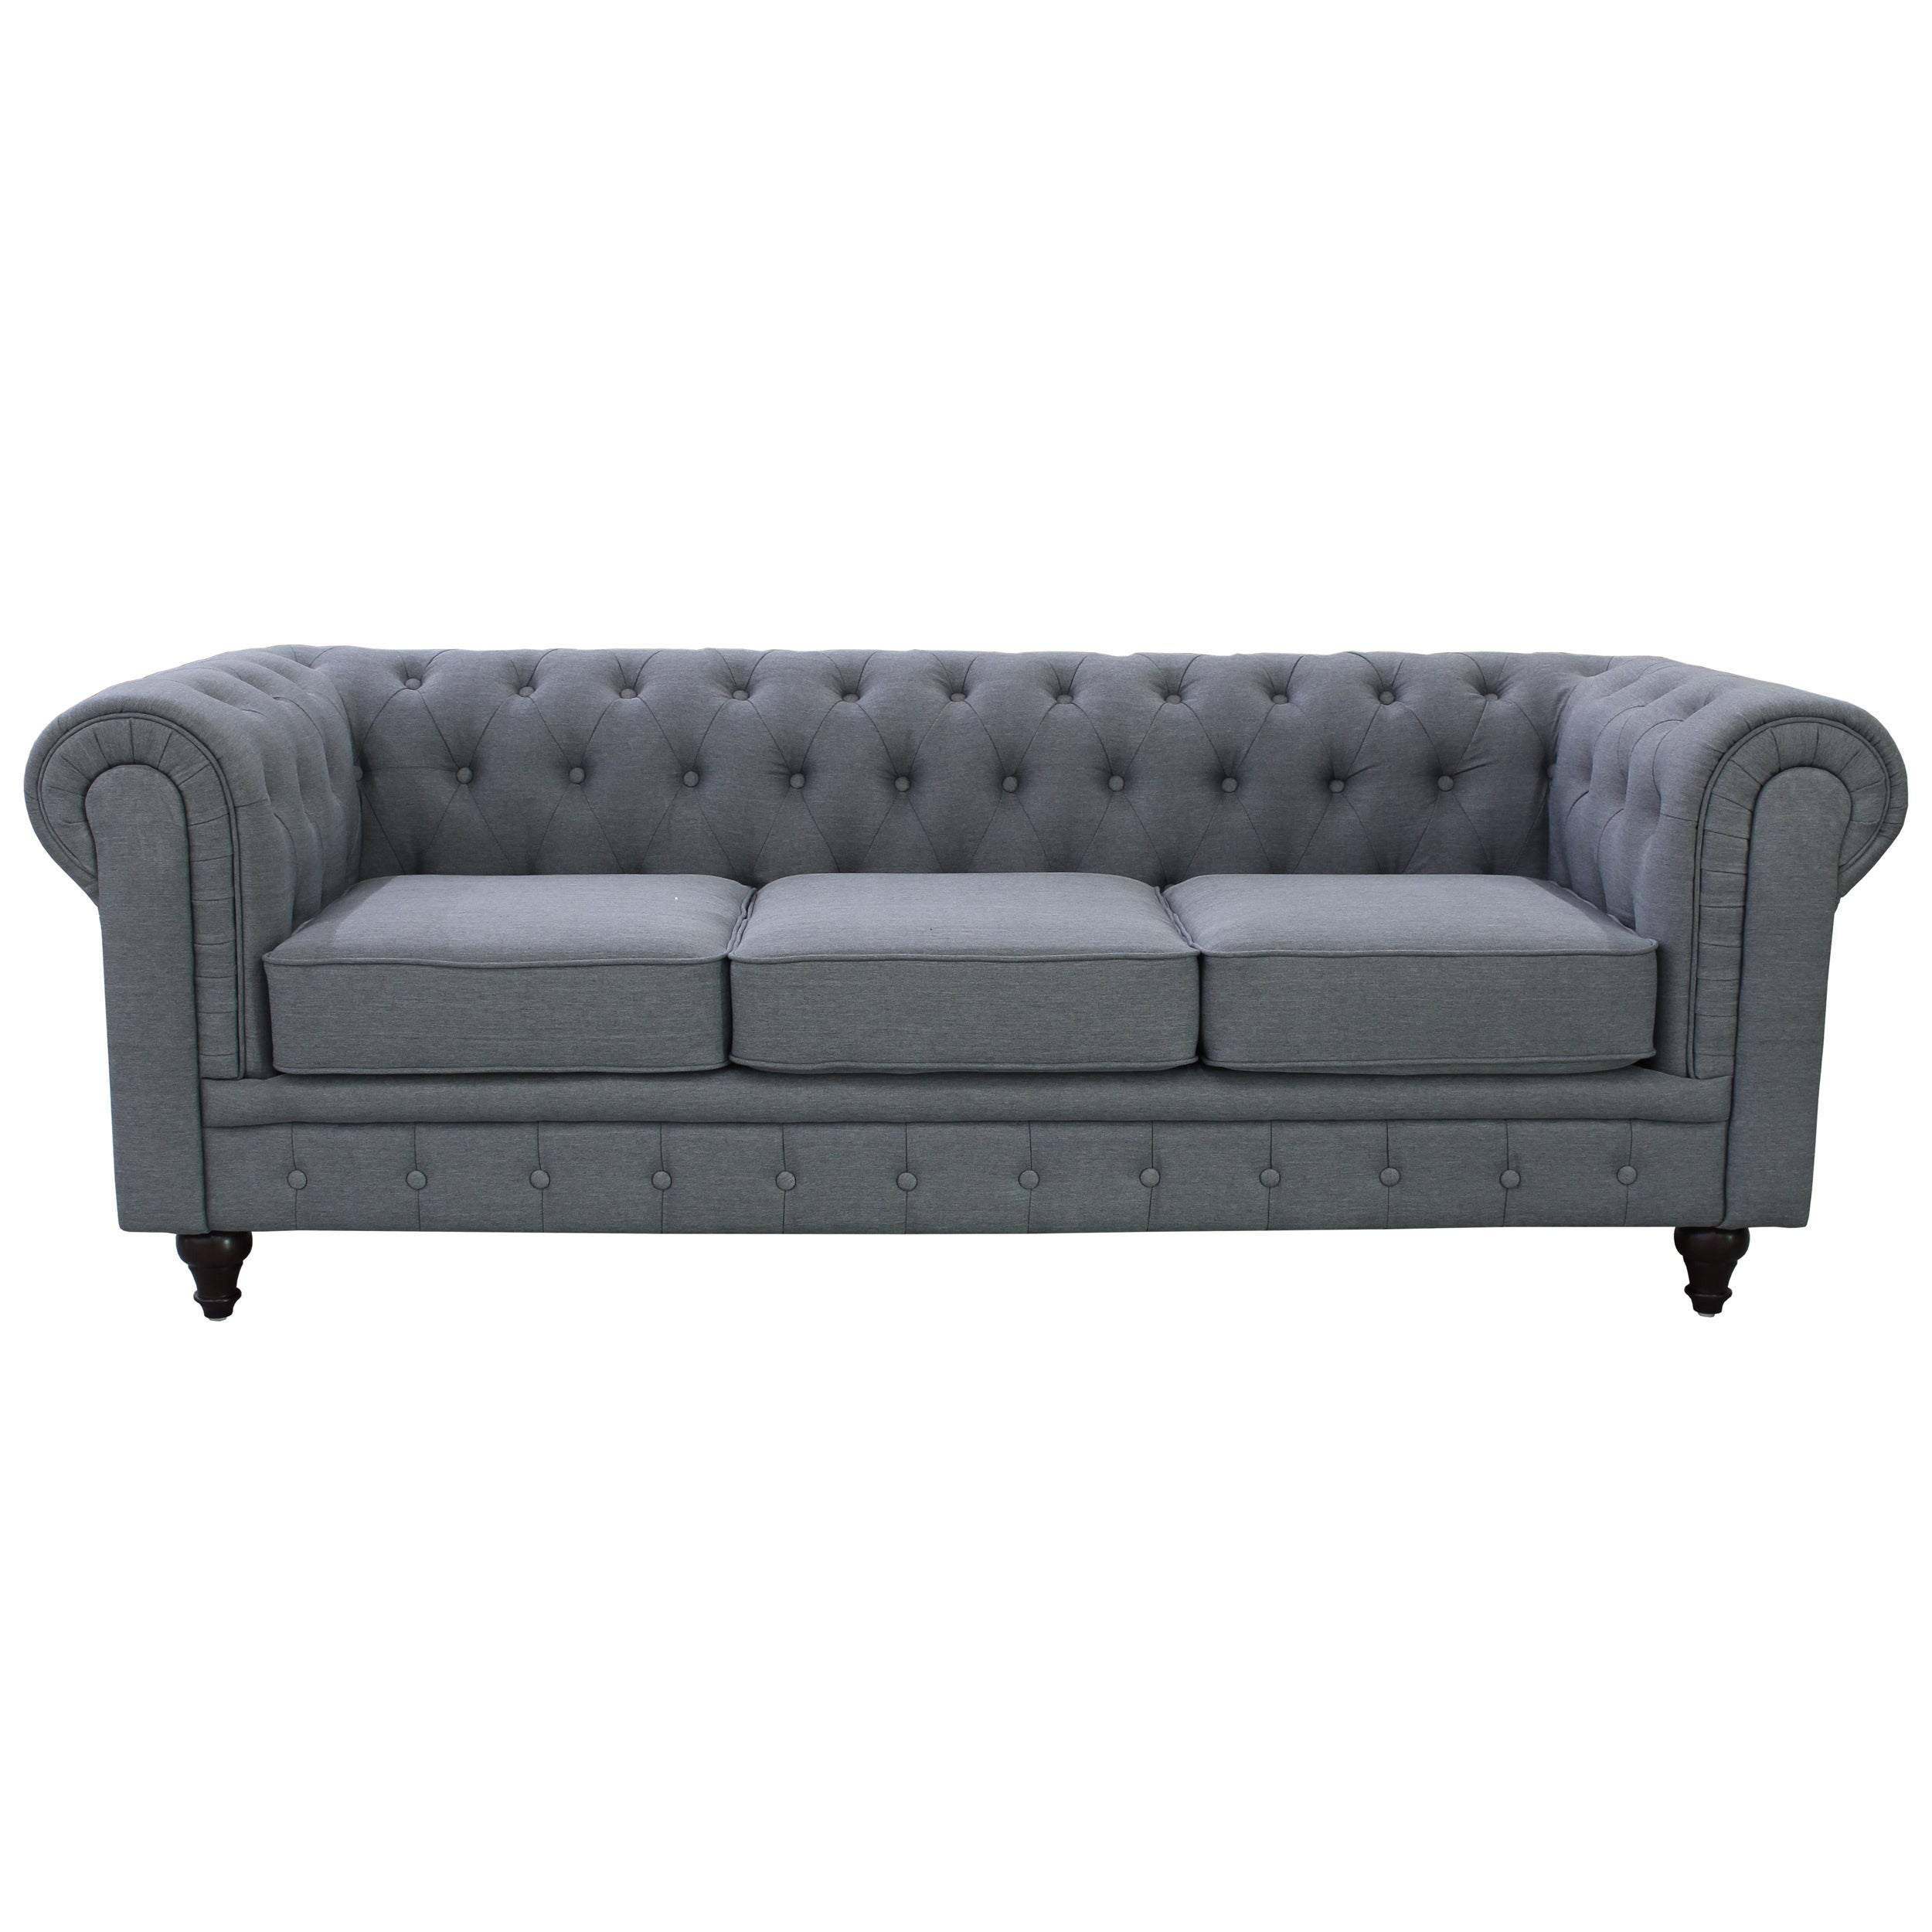 Grace Grey Linen Fabric Chesterfield Sofa Free Shipping Today 10759275